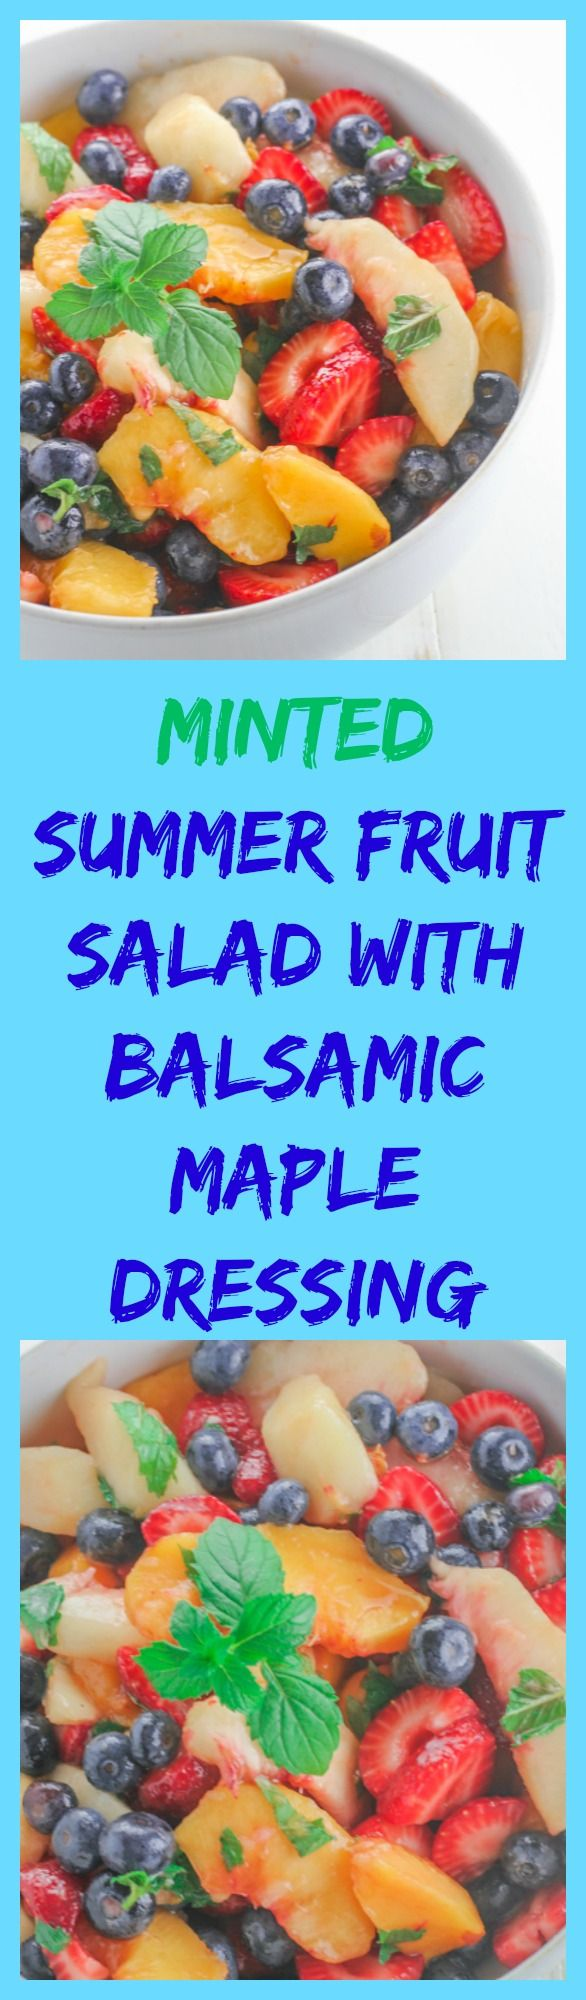 This Minted Summer Fruit Salad combines the freshness of summer fruits with a light, balsamic maple dressing for a refreshing summer treat that's easy to prepare and delicious.